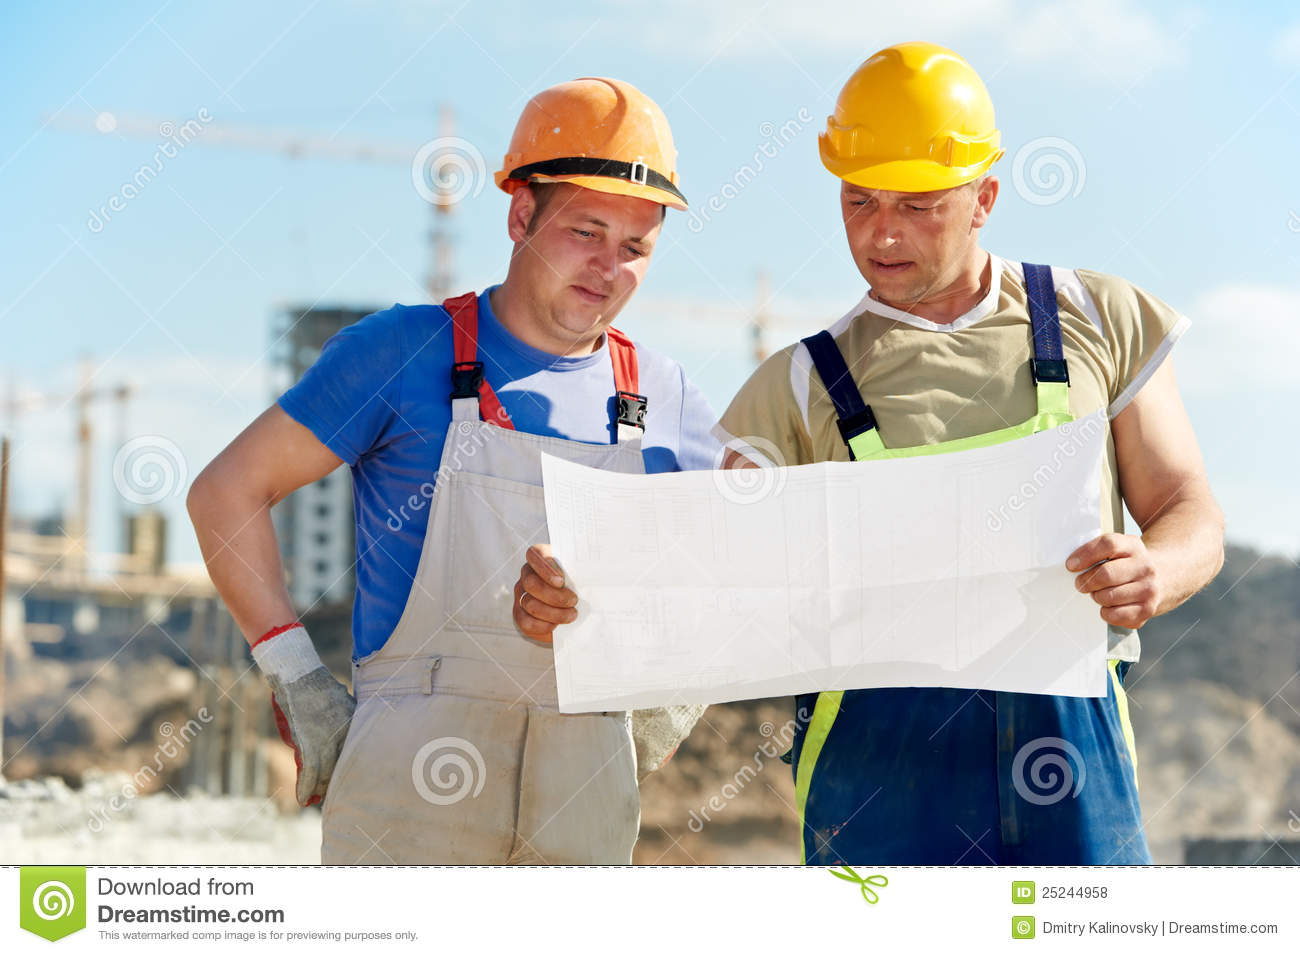 safety in construction sites essay A construction safety officer may take on additional roles and responsibilities, but  their primary job is helping to create safer construction sites.